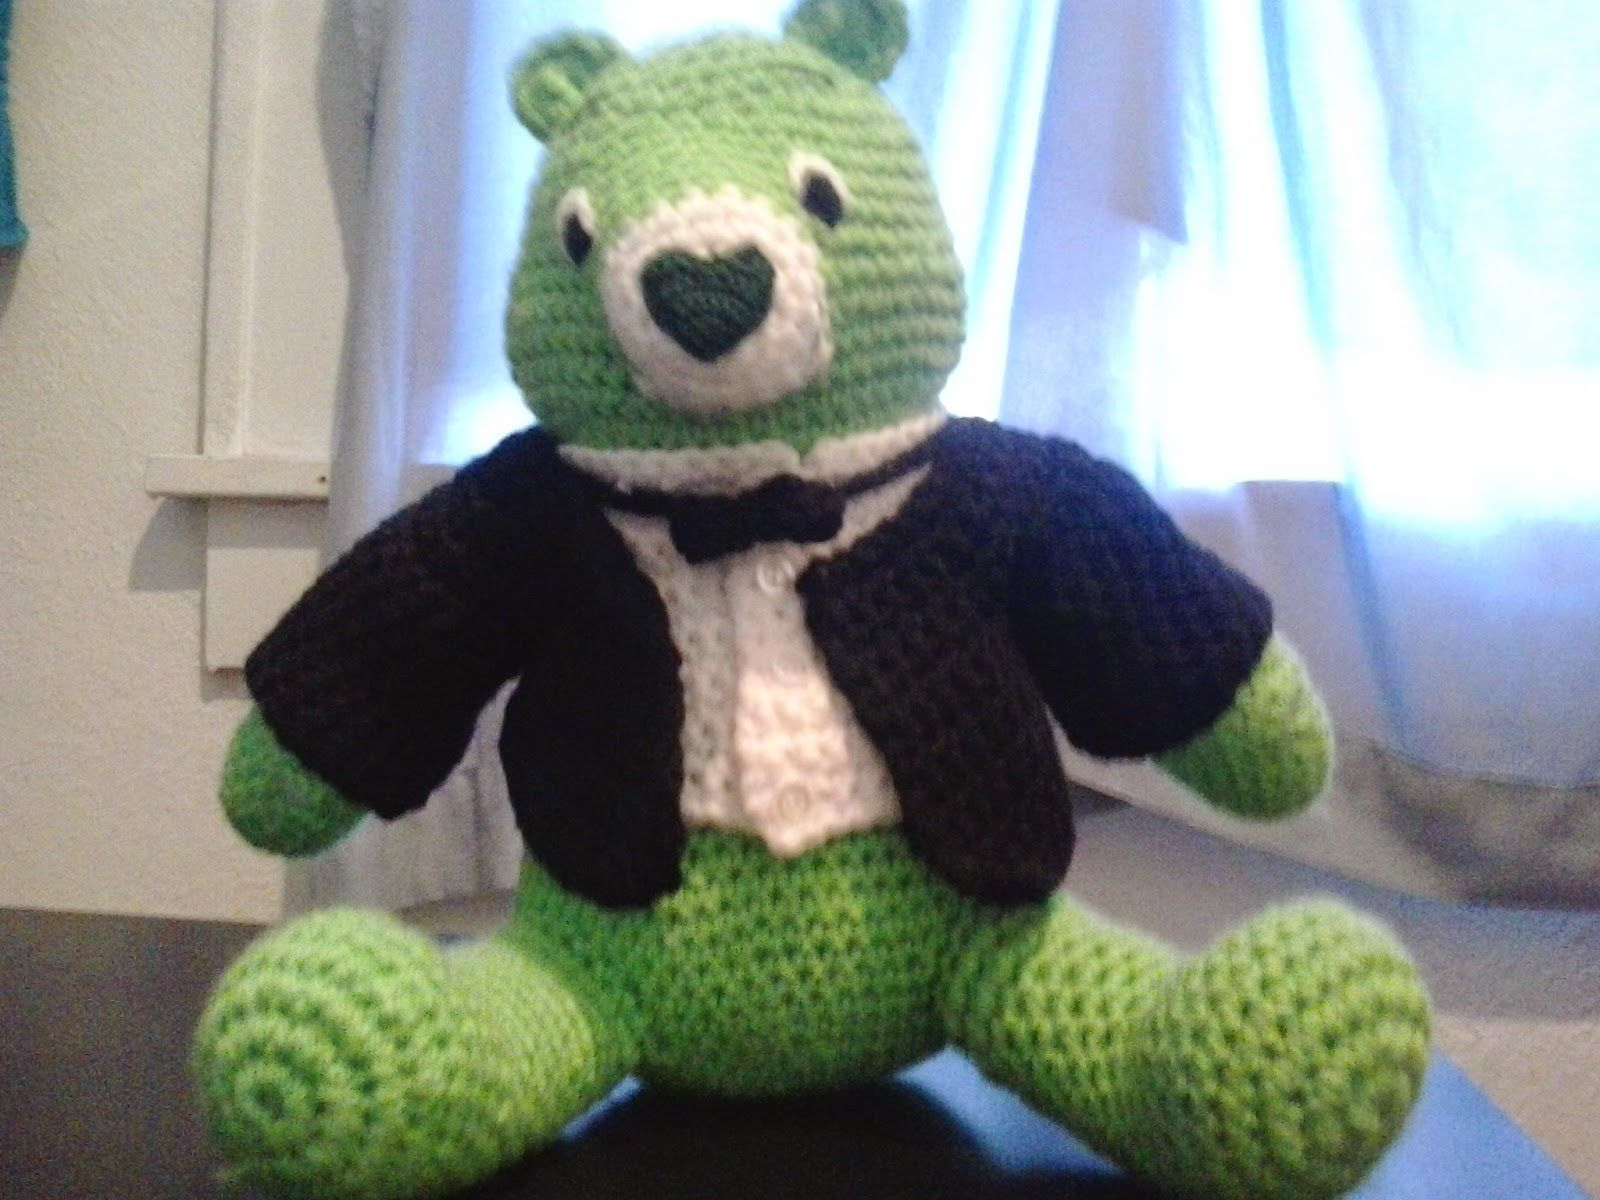 Crochet fanatic tuxedo for care bear sized animals patterns crochet fanatic tuxedo for care bear sized animals bankloansurffo Choice Image